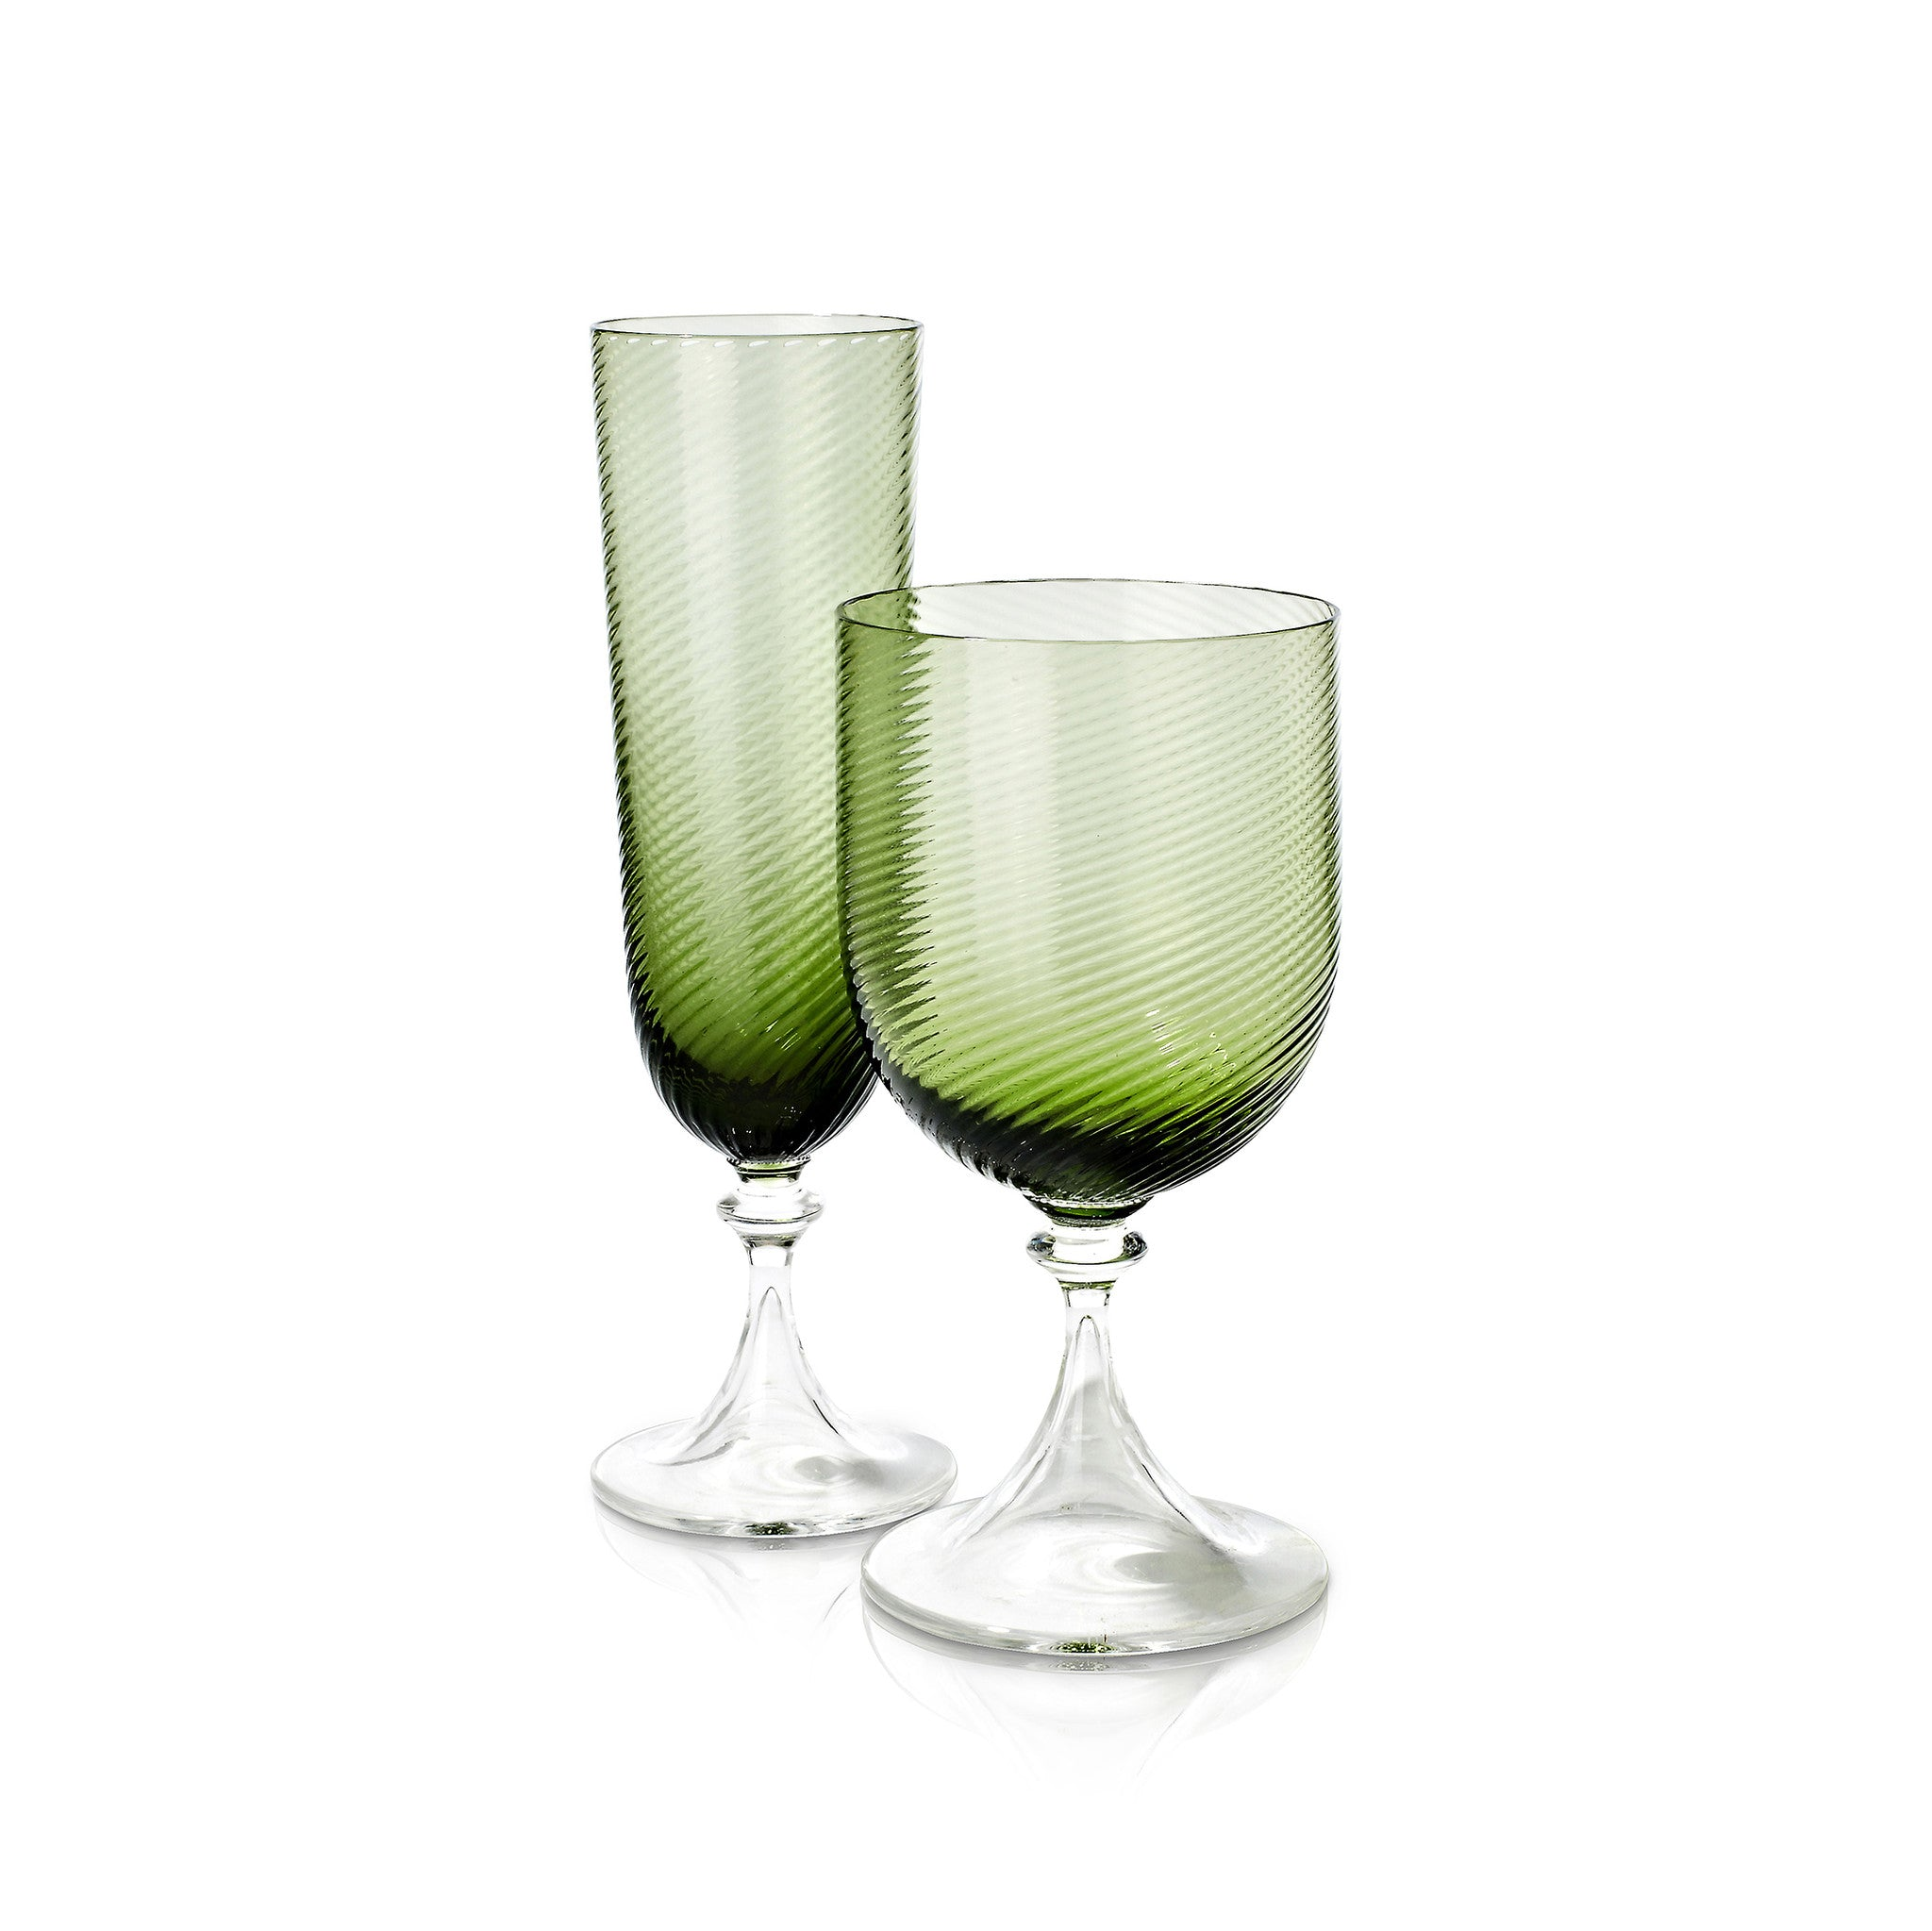 Murano Wine Glass in Green